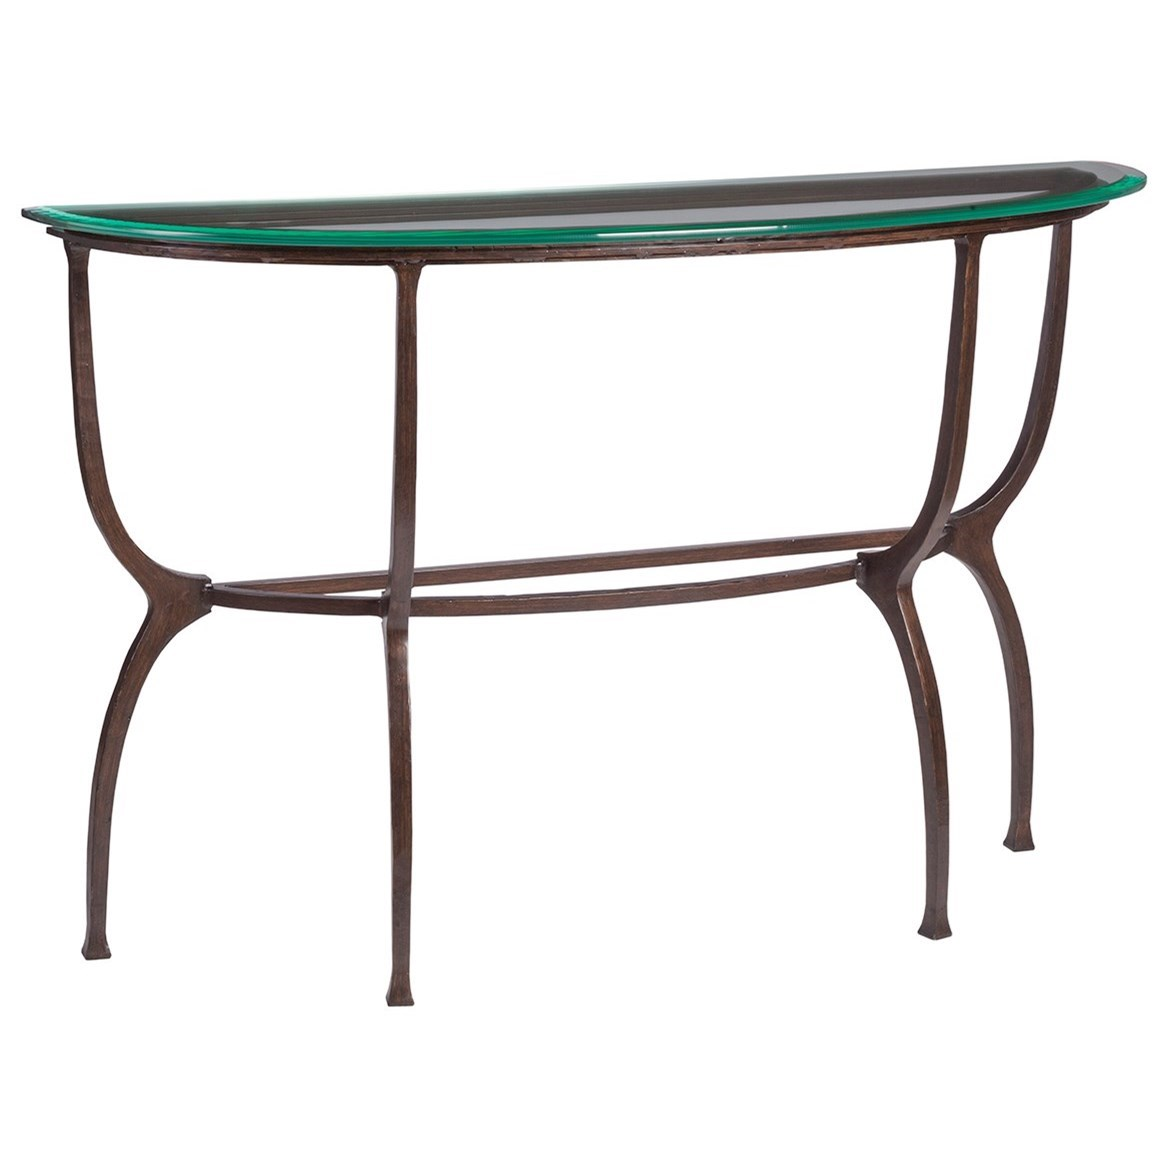 Metal Designs Patois Console by Artistica at Baer's Furniture